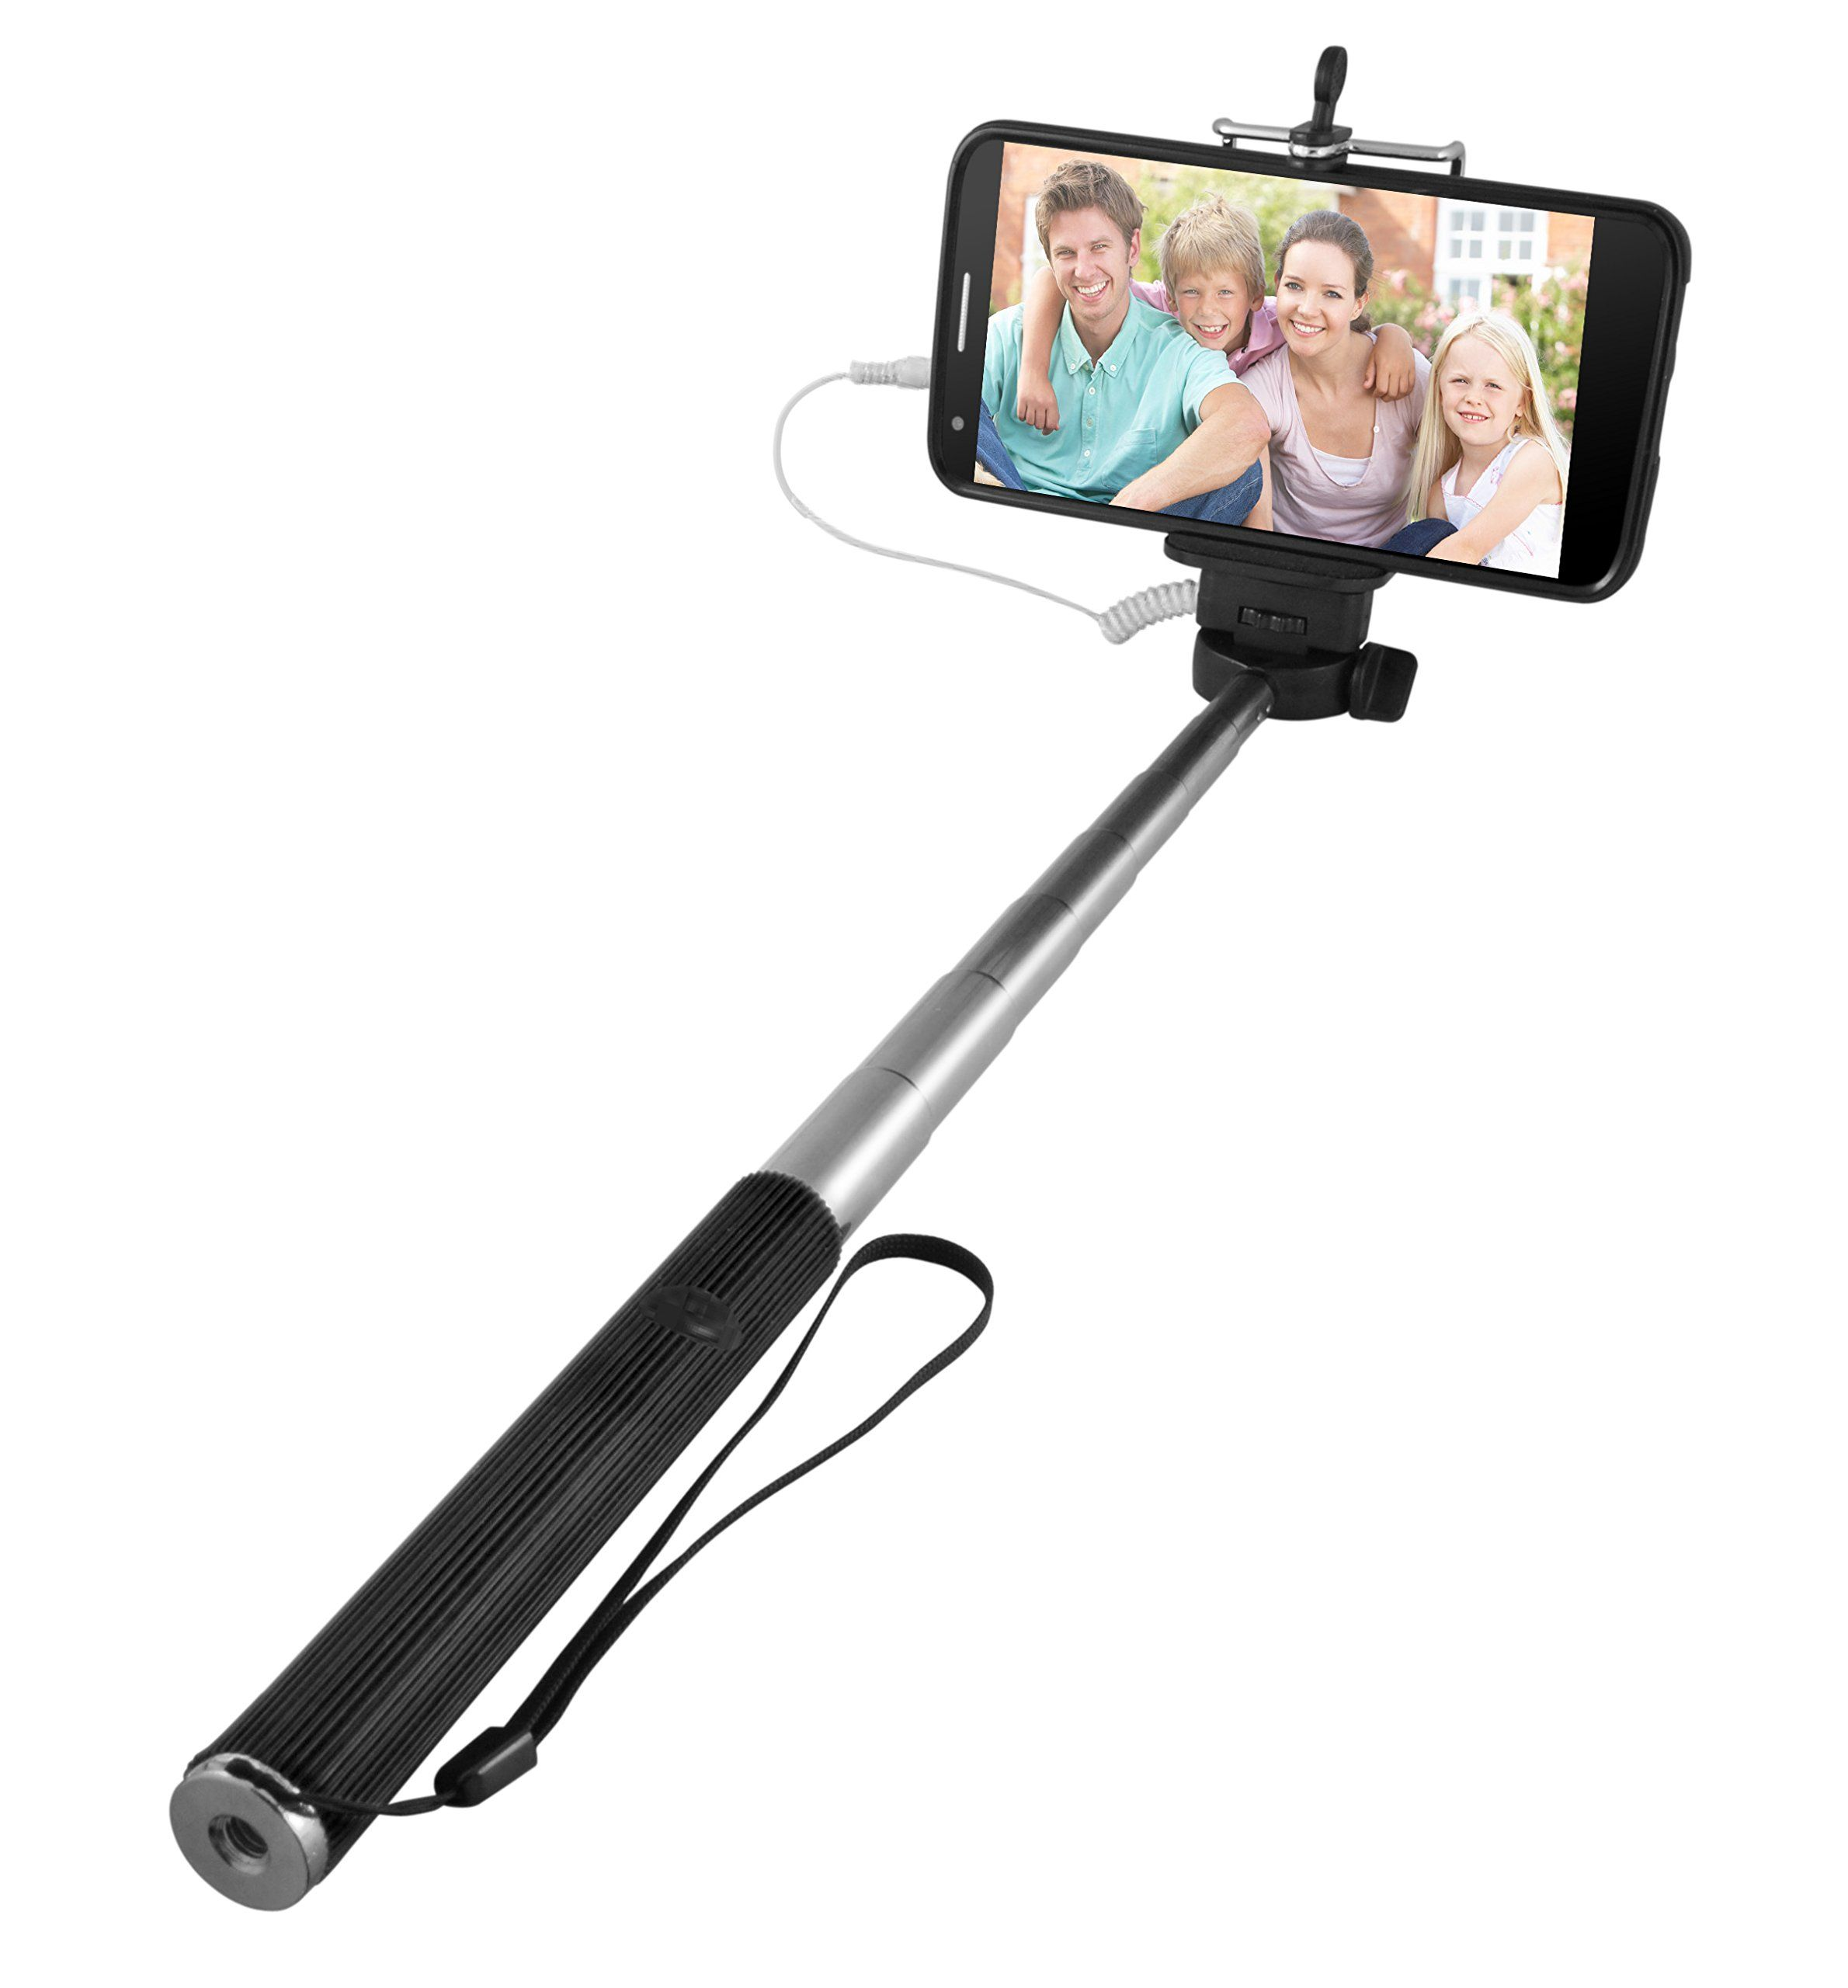 Samsung Galaxy device Ematic Selfie Stick Compatible with iPhone 4S or newer Black and more- Retail Packaging